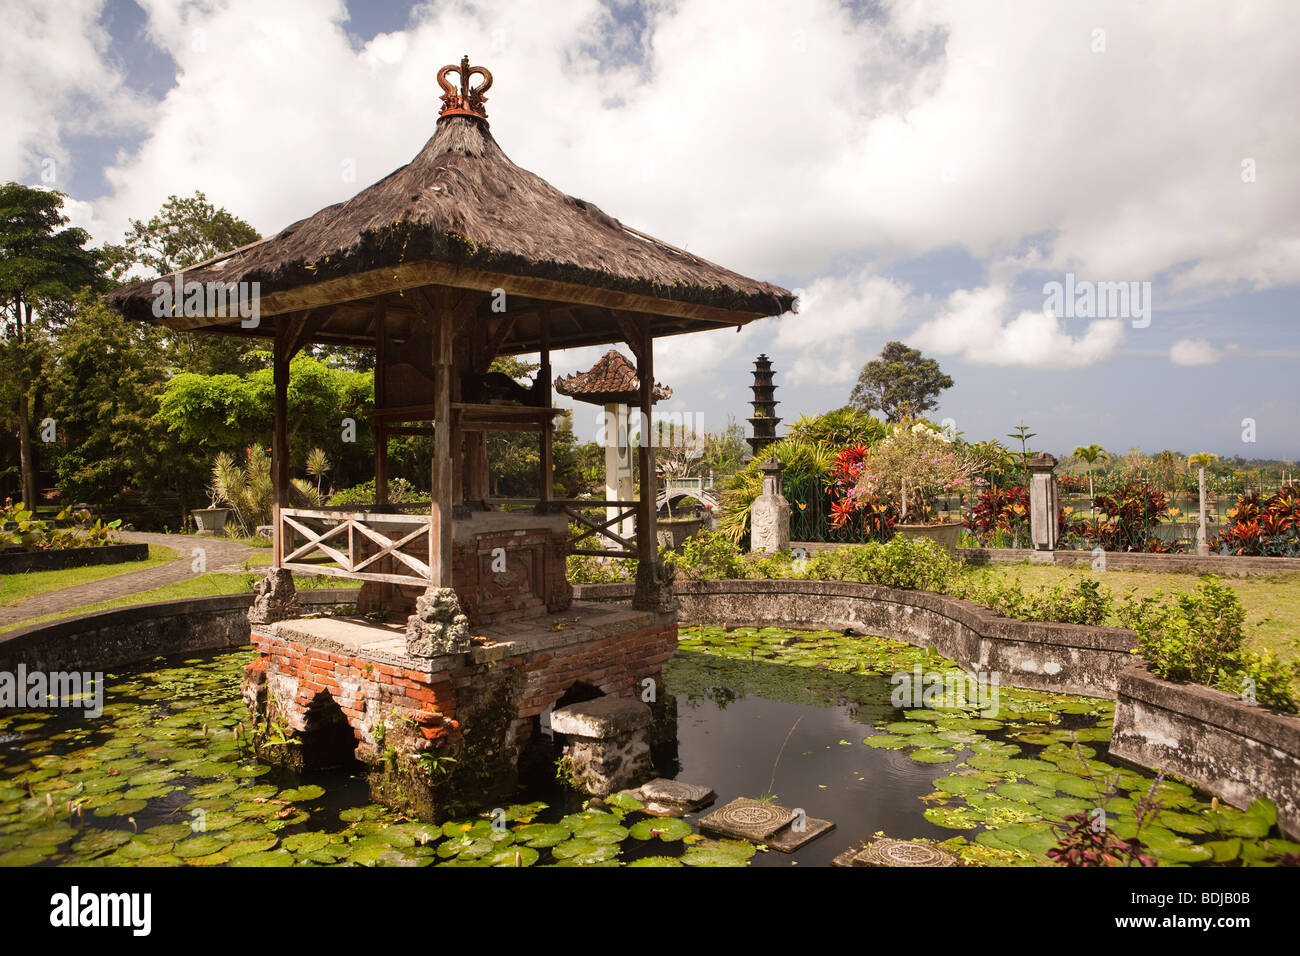 Tirta Gangga Royal Water Garden: Indonesia, Bali, Tirta Gangga, Water Palace Garden, Small